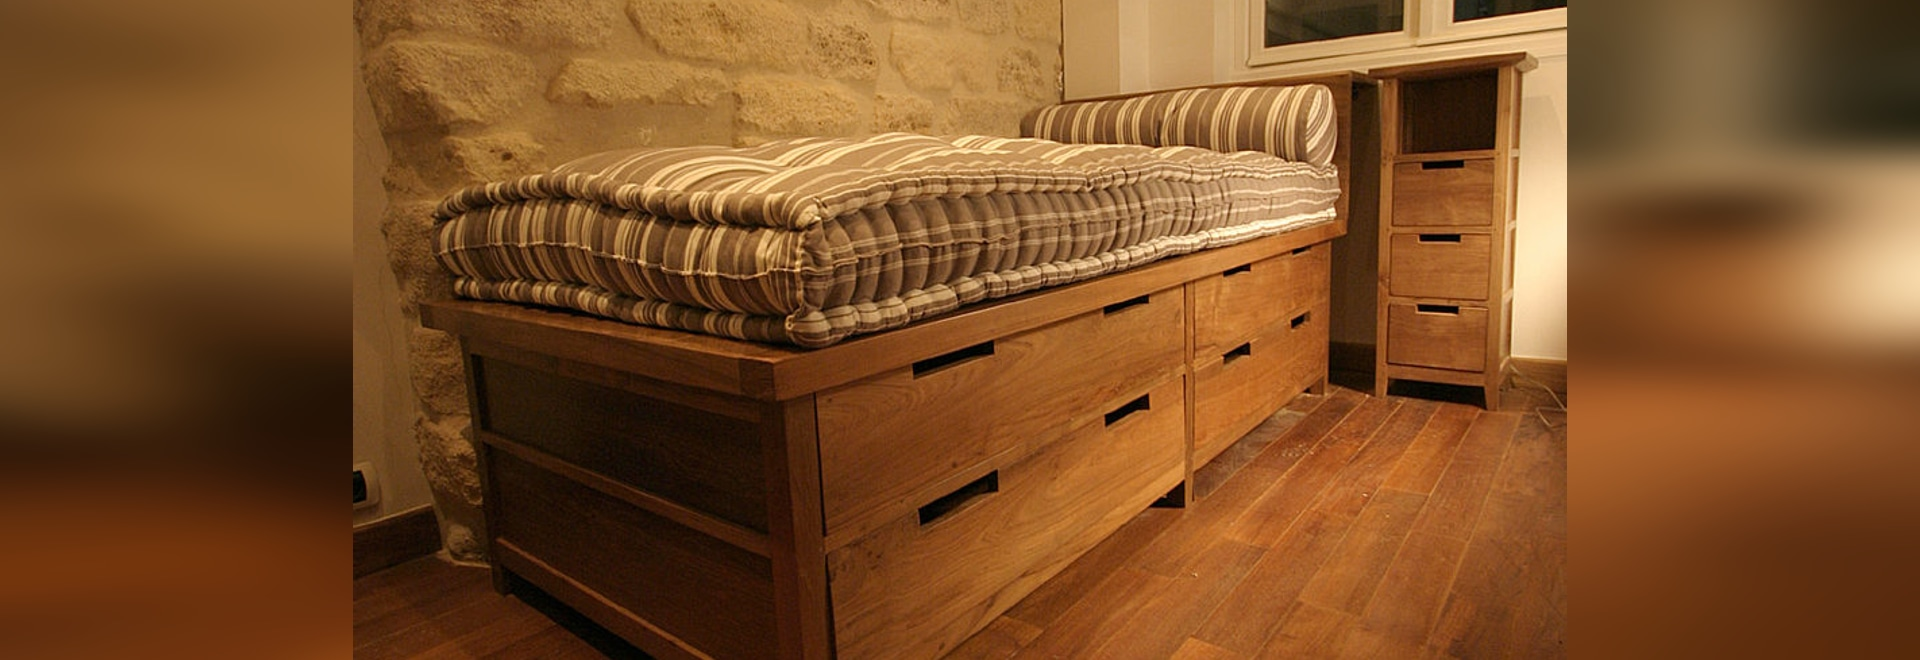 REclaimed Teak Bed with Drawers